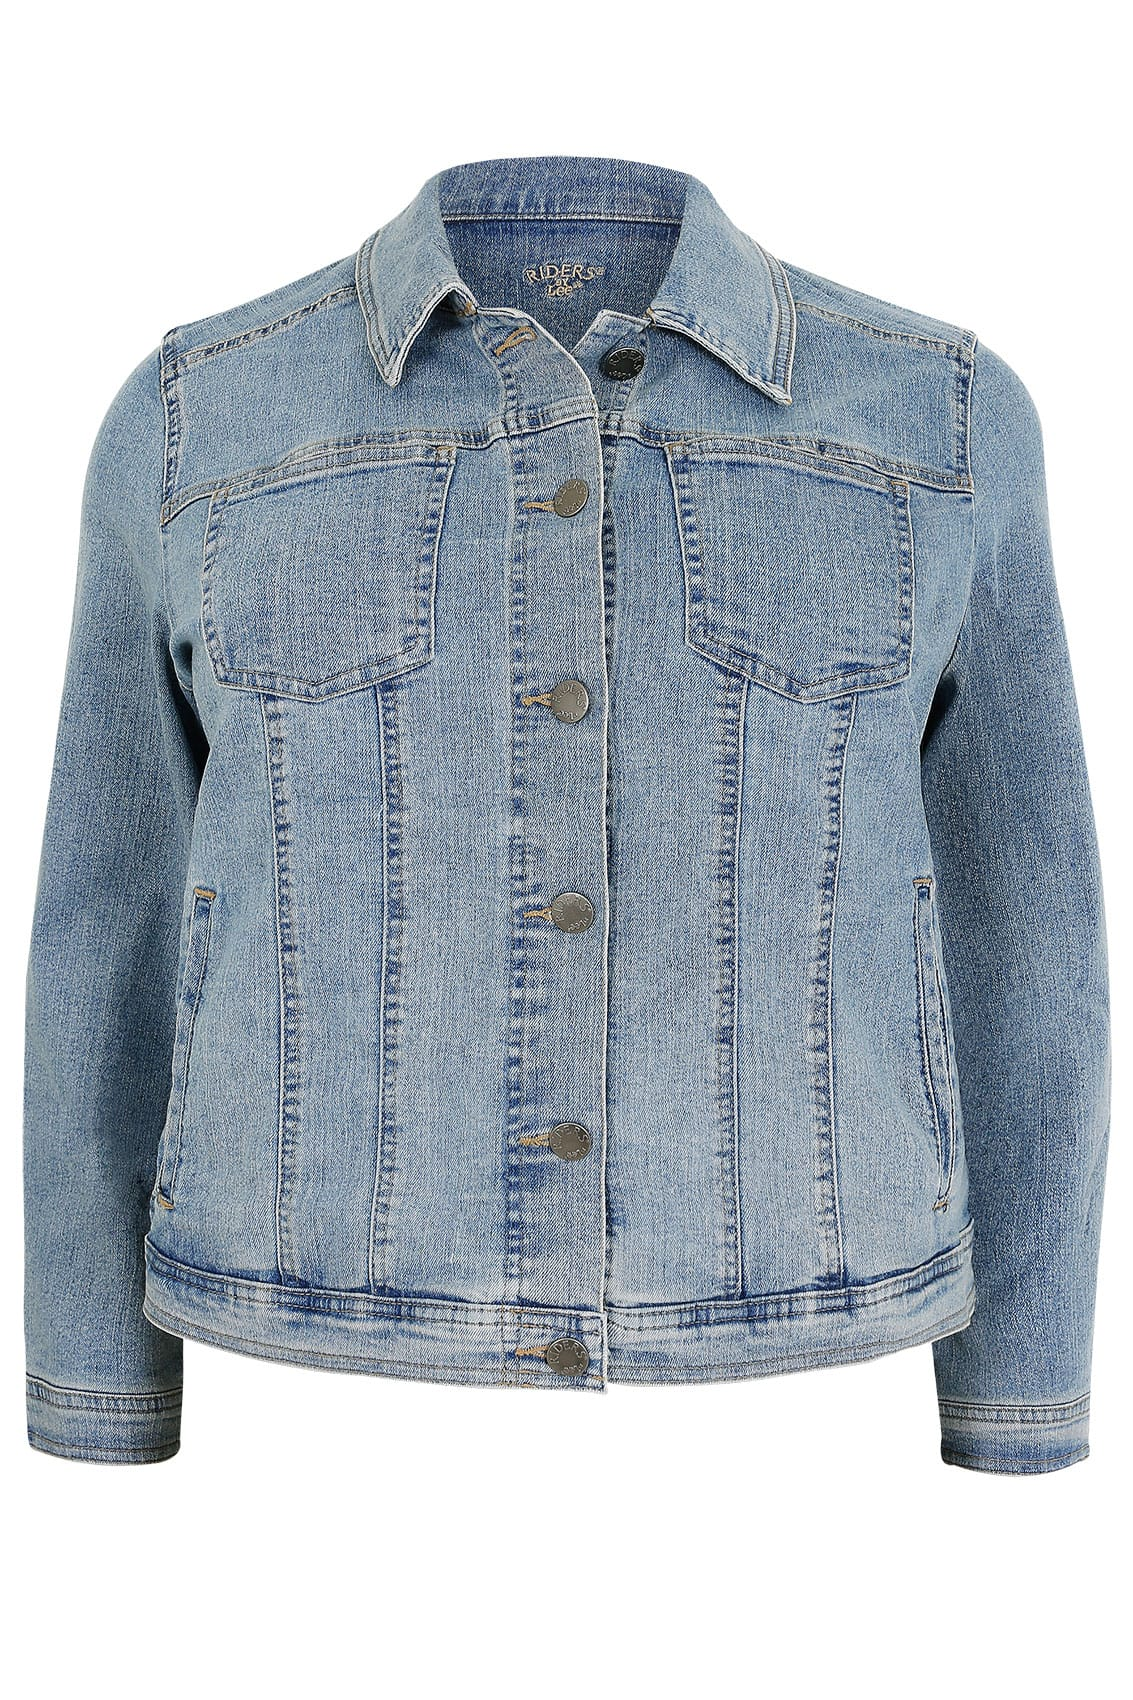 PWH25D10 Please contact your local stockist to purchase Our amazingly stretchy Denim Jacket is just the ticket to trans-seasonal dressing: make your favourite dresses Winter proof while adding a touch of urban edginess to your look. A fresh new take on a wardrobe staple, if you don't already own a denim jacket - y.